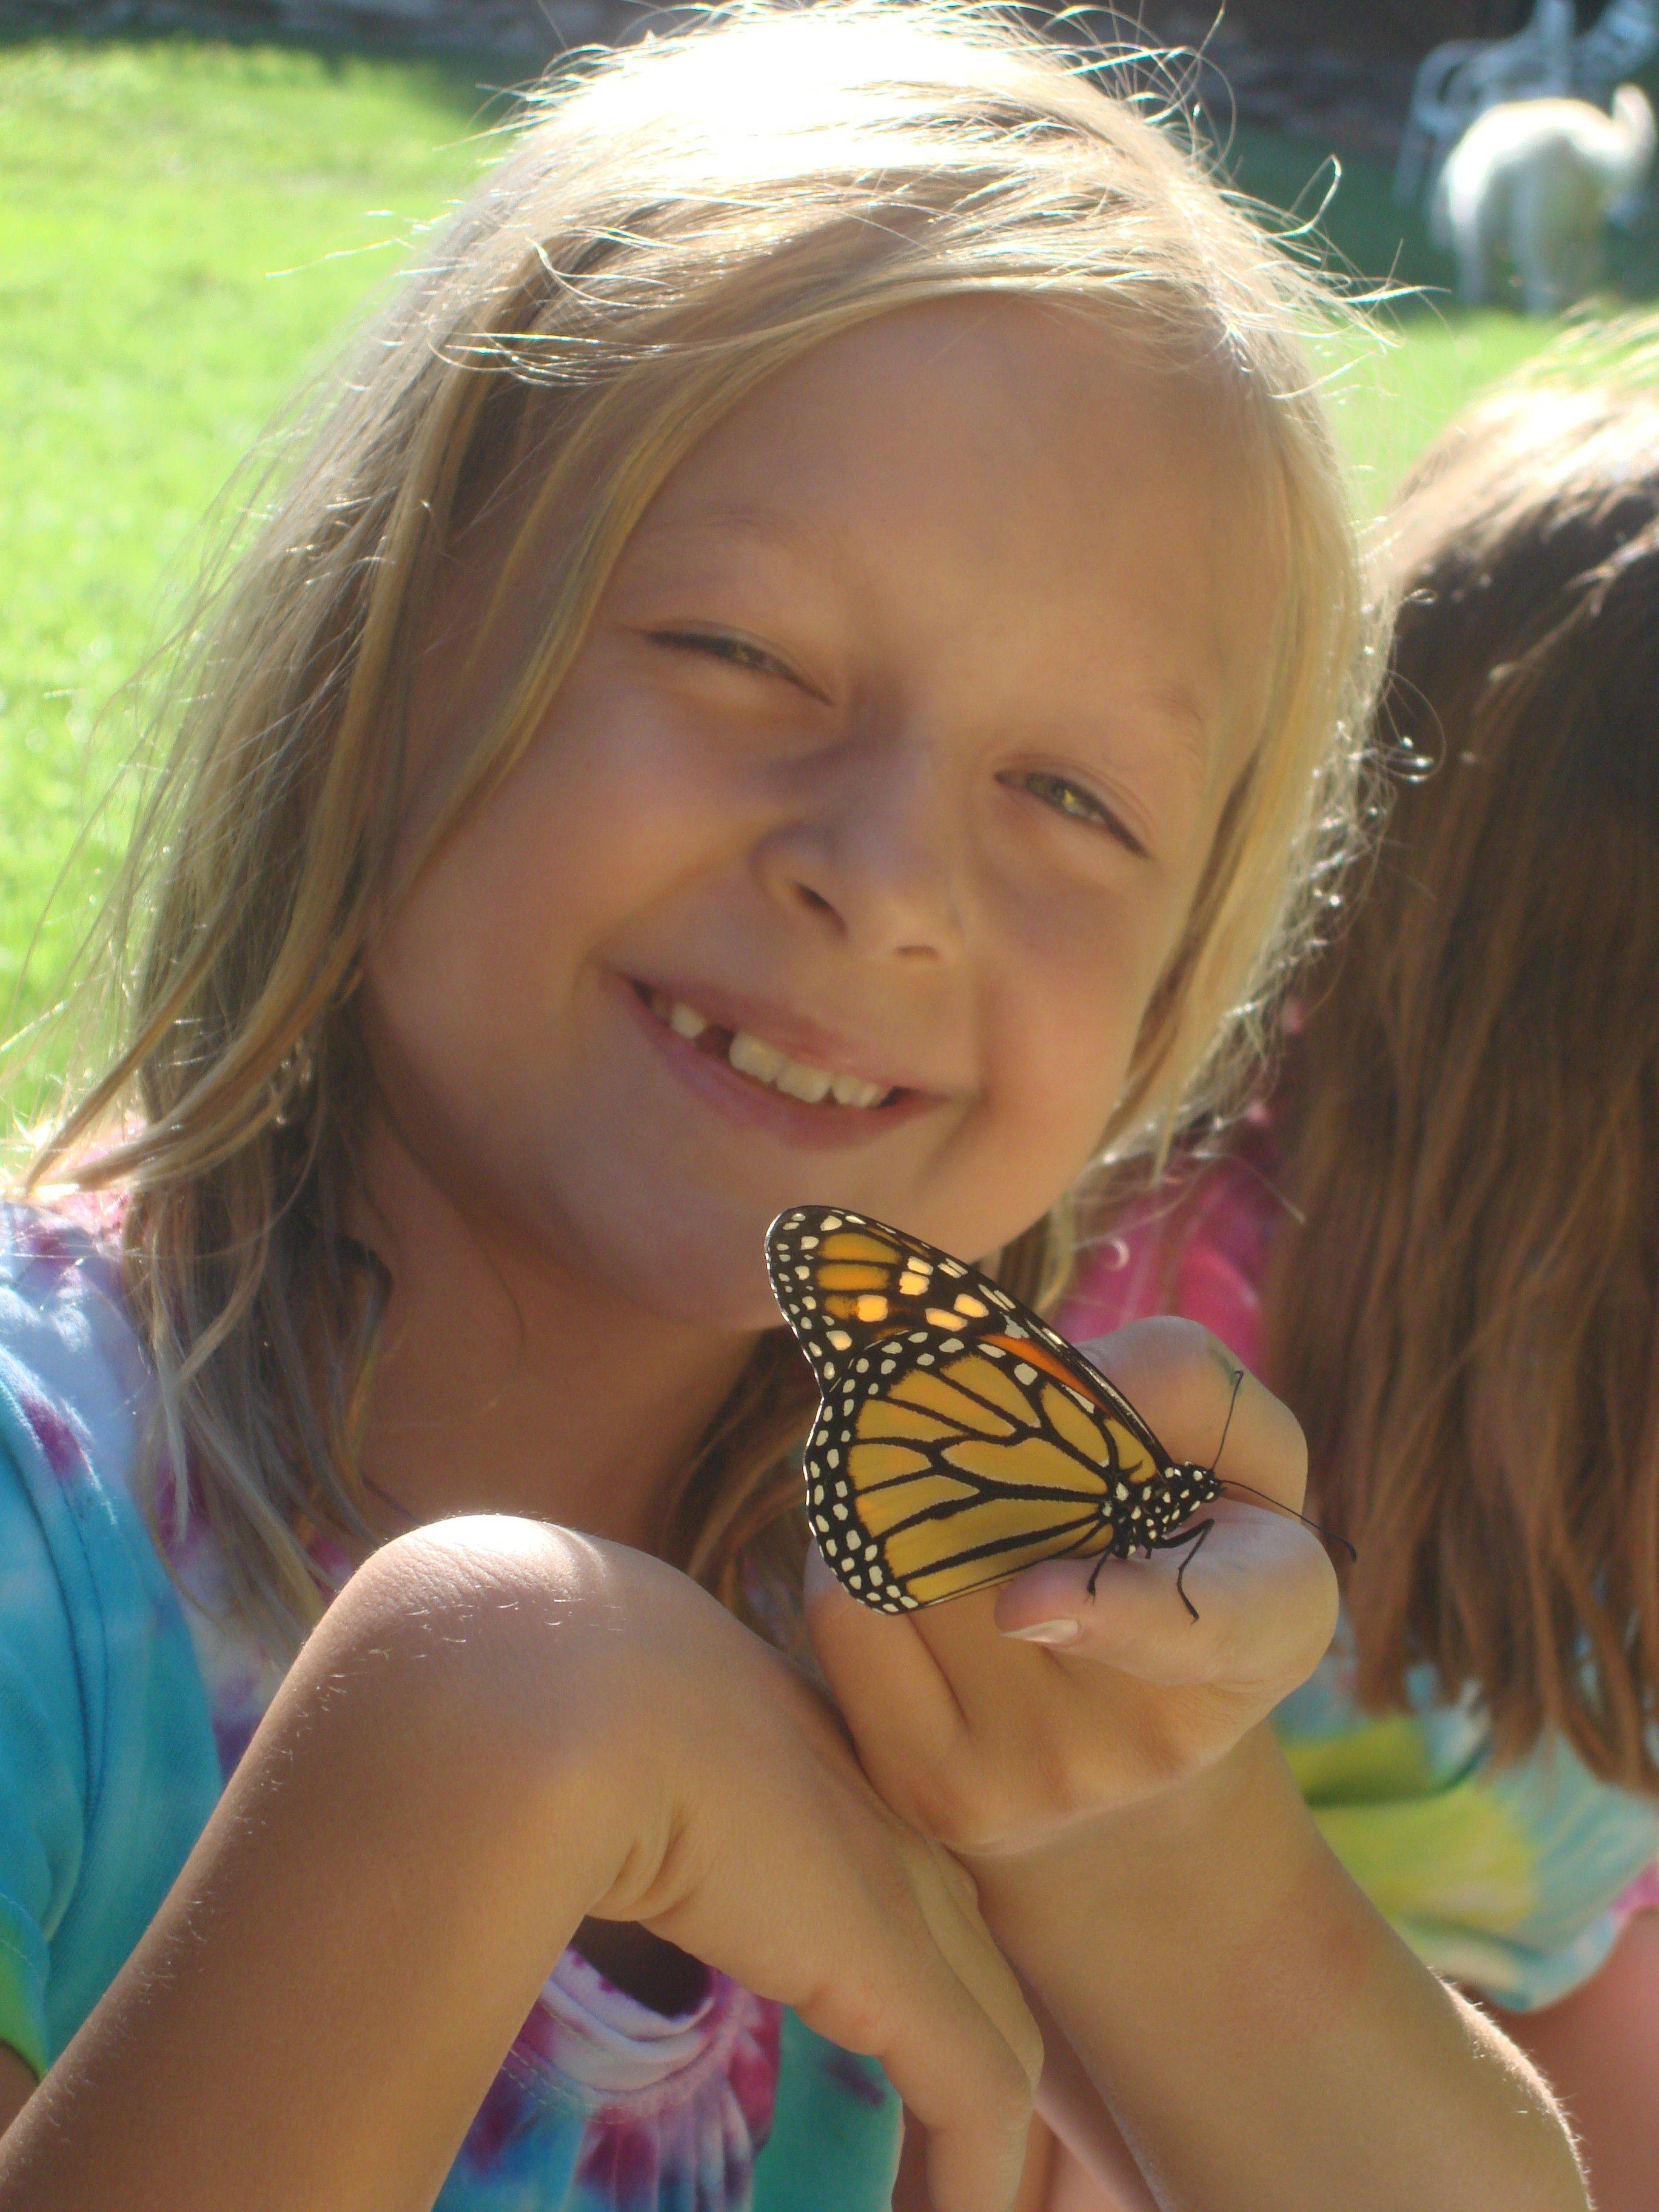 Lanie Hedrick brought beauty to Lisle by nurturing an releasing 62 Monarch butterflies.